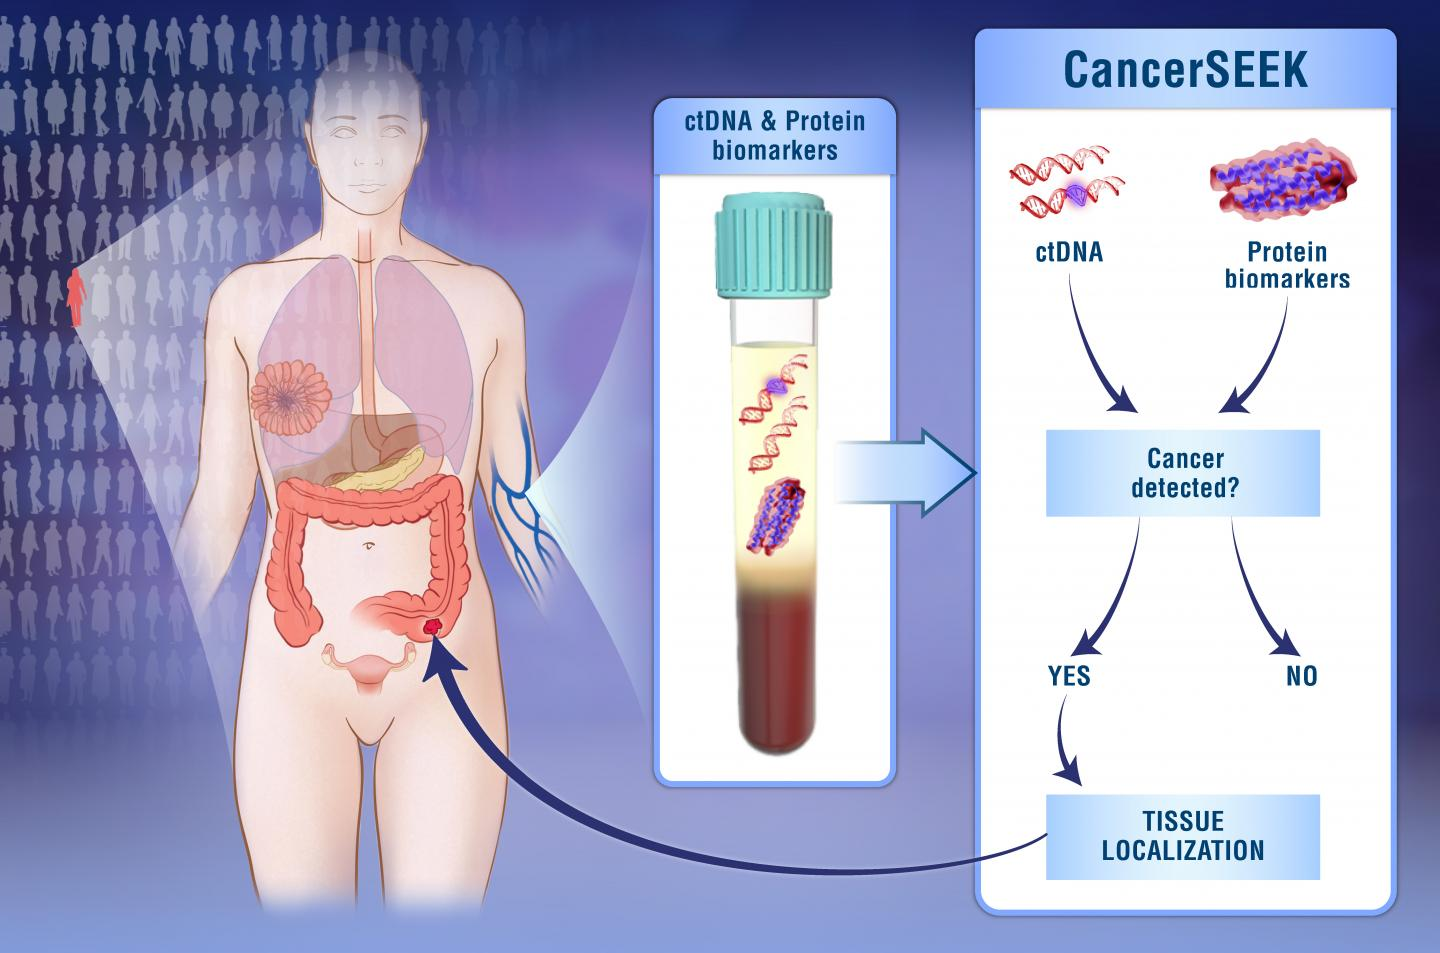 Infographic shows a body, blood with ctDNA and protein biomarkers in a tube, a CancerSEEK chart asking whether cancer is present, and the result pointing to the source of the cancer in the body